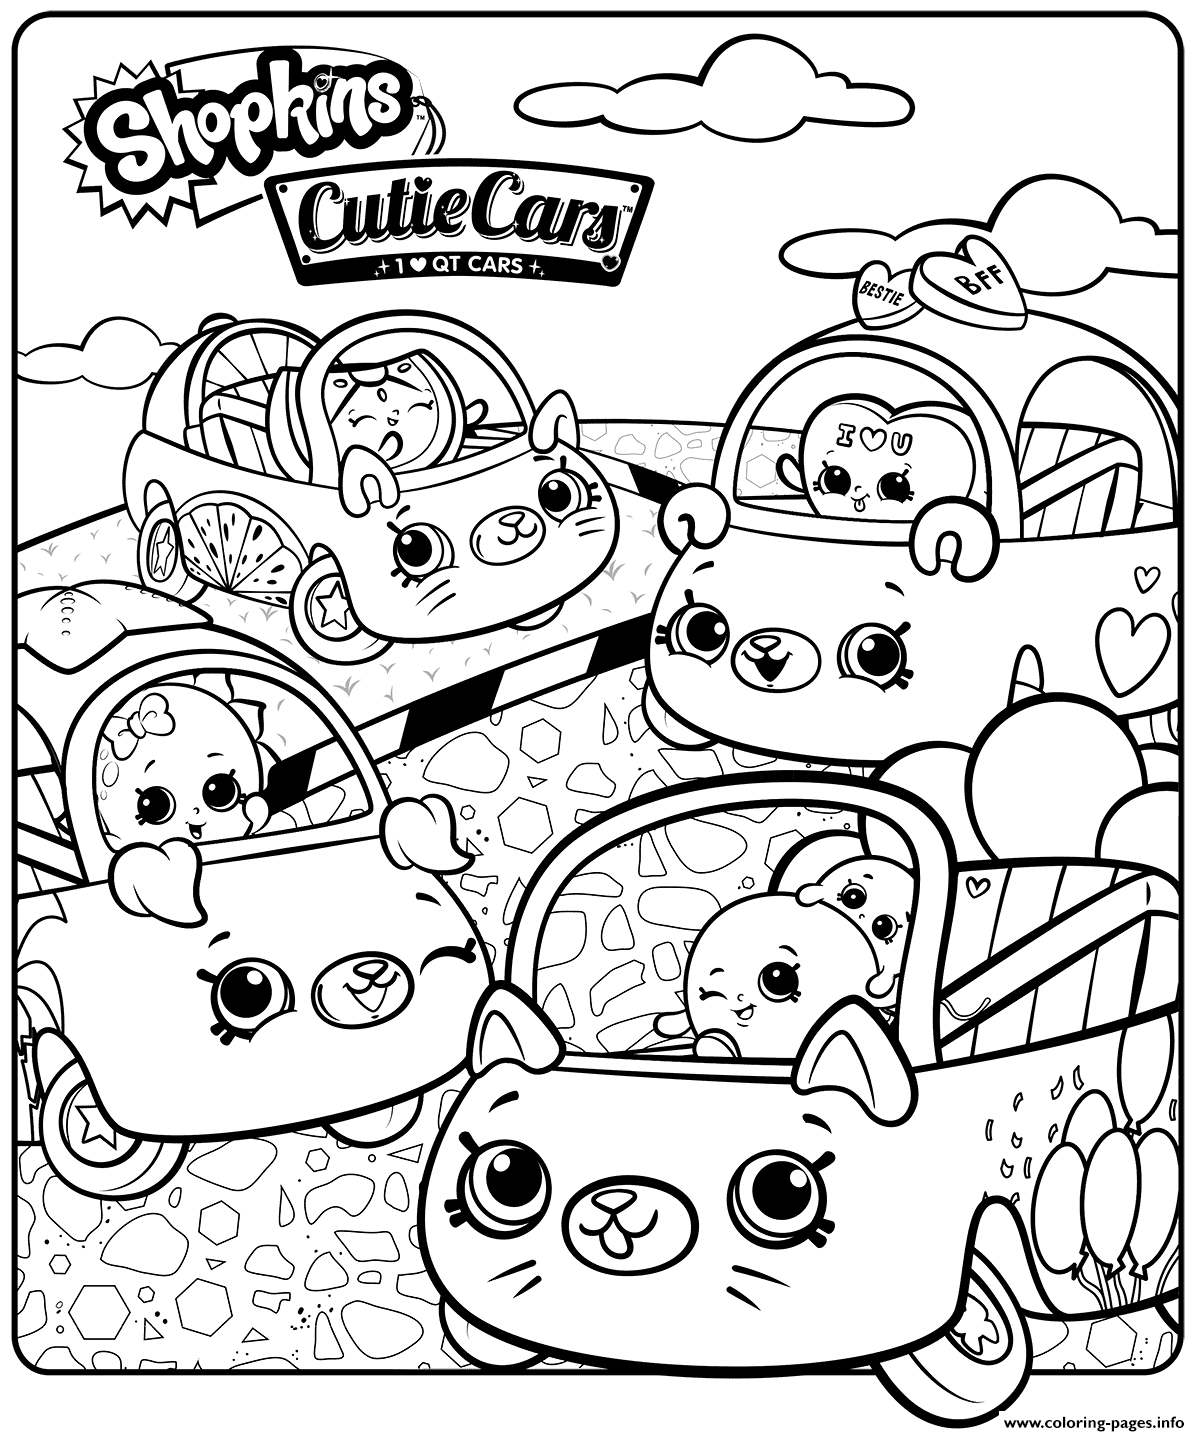 Shopkins Cutie Cars Sheet Coloring